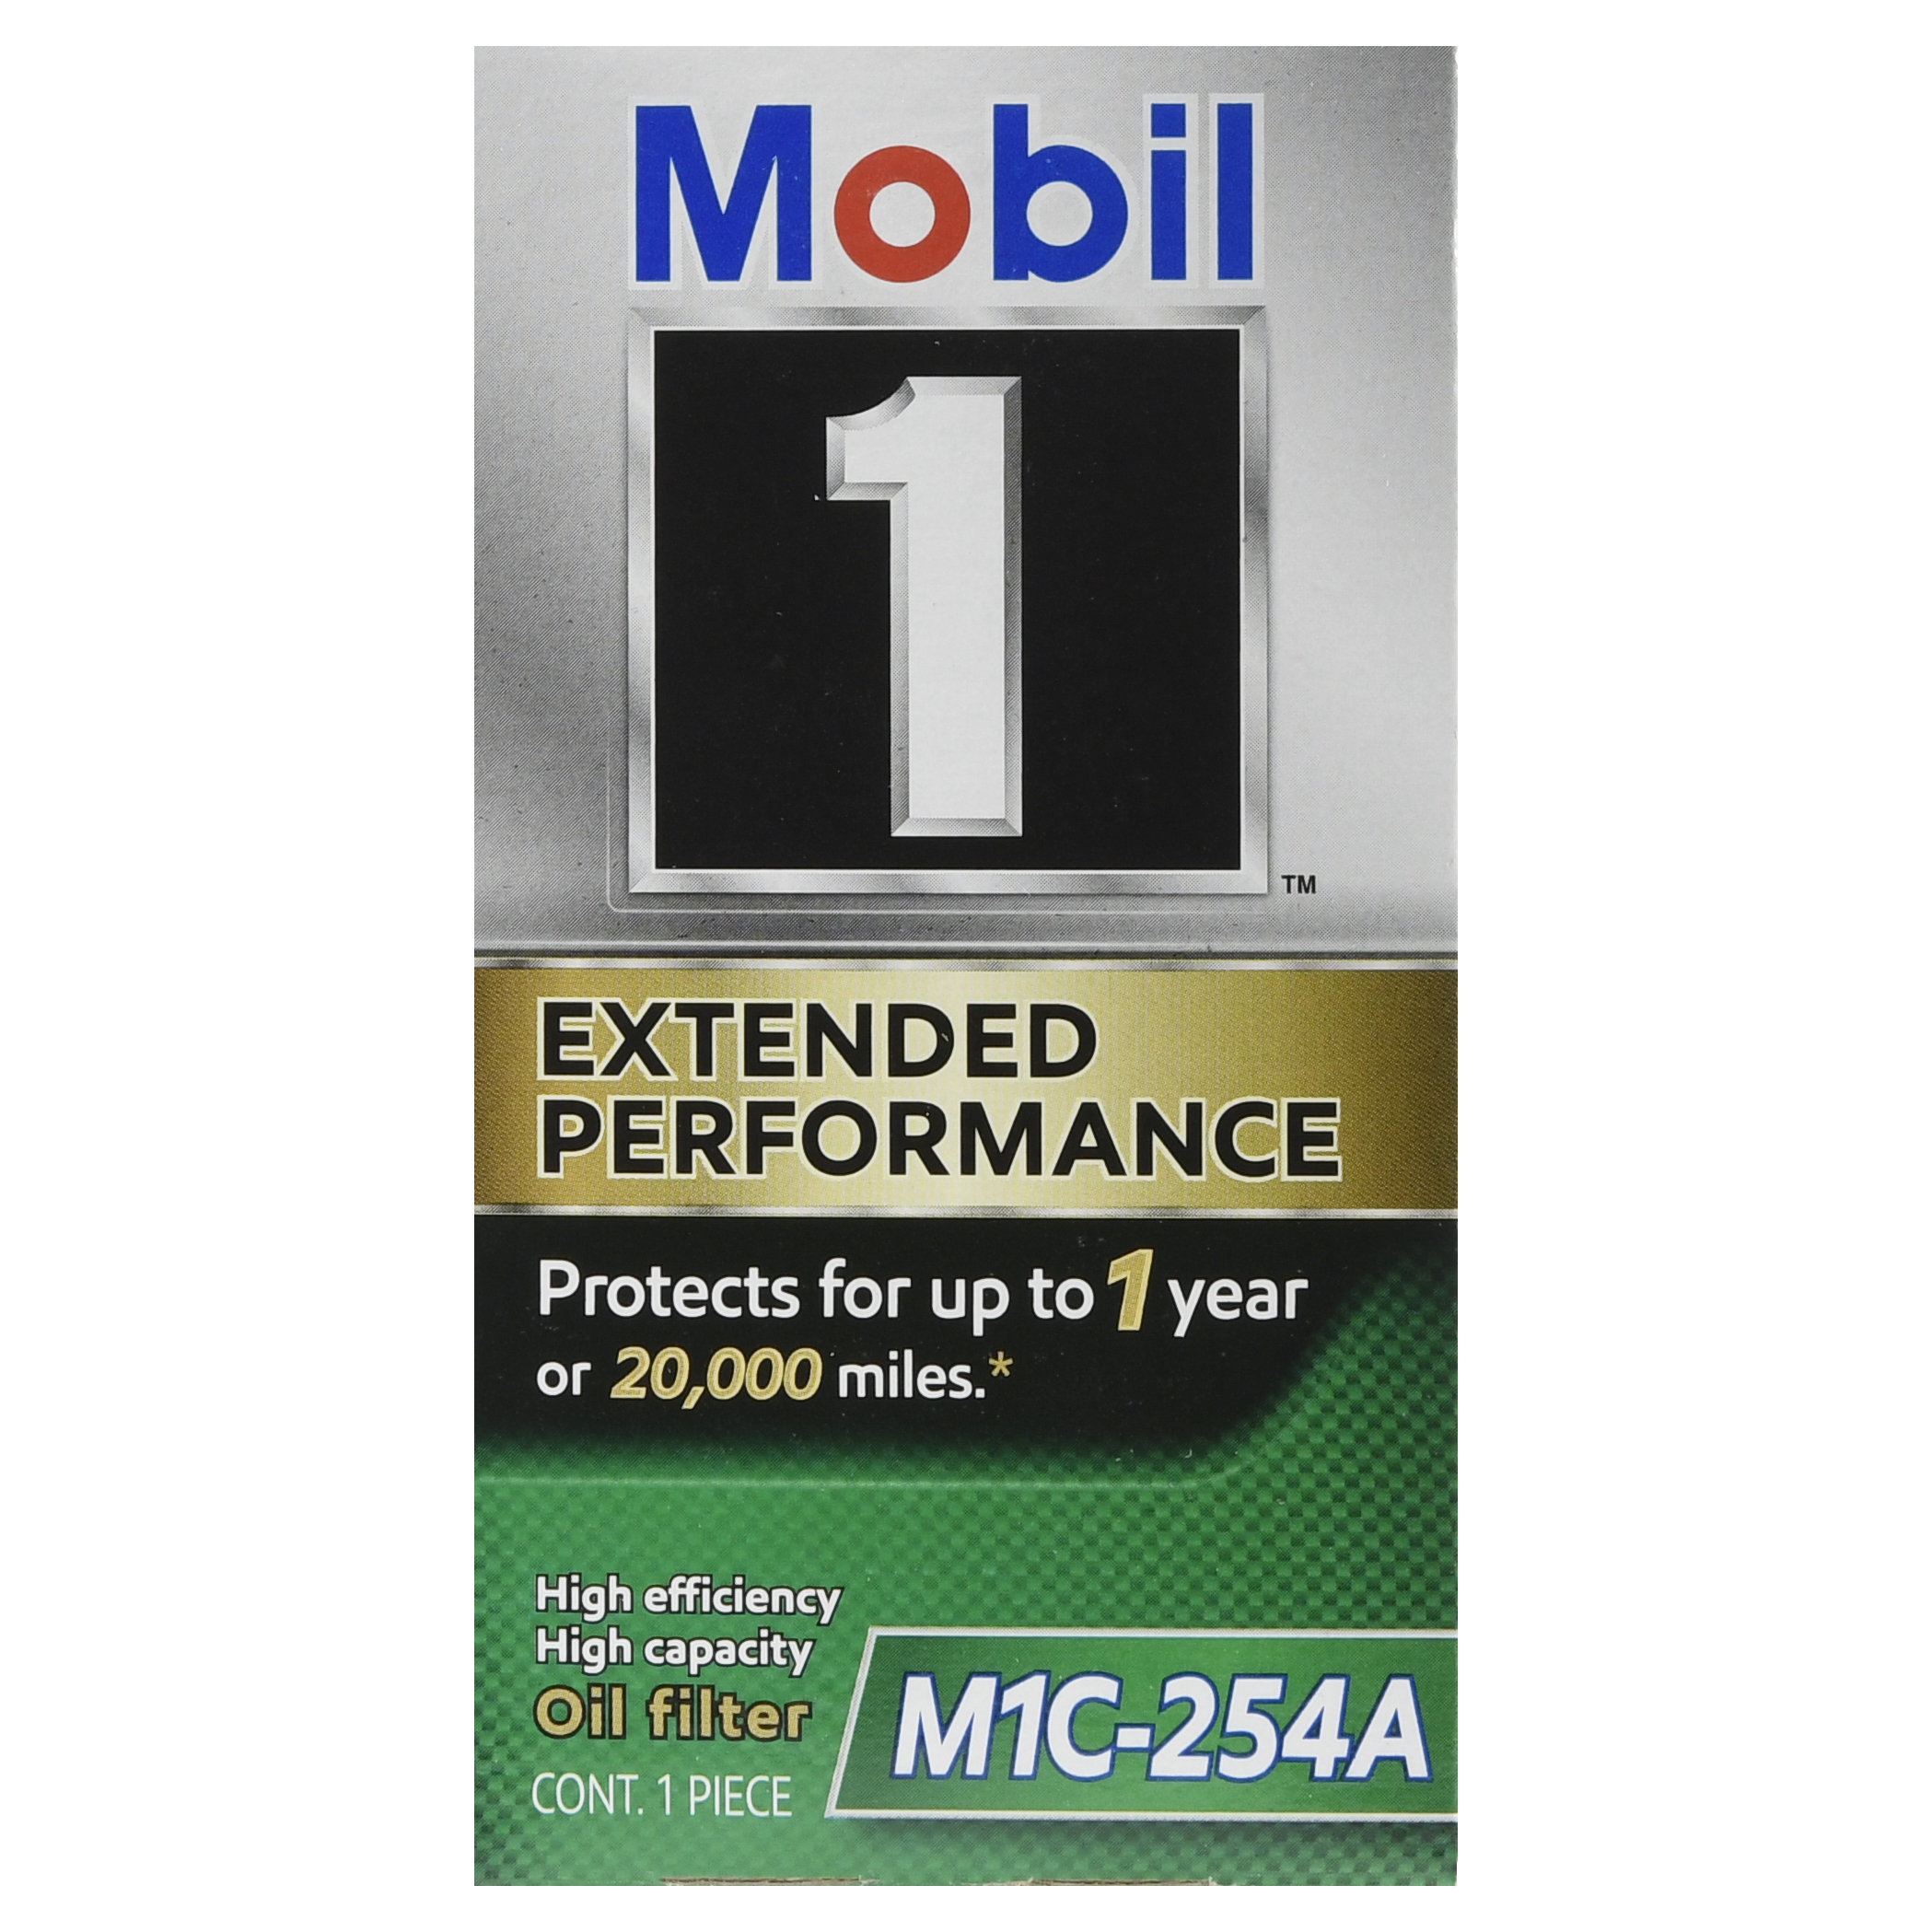 Mobil 1 M1c-254a, Oil Filter